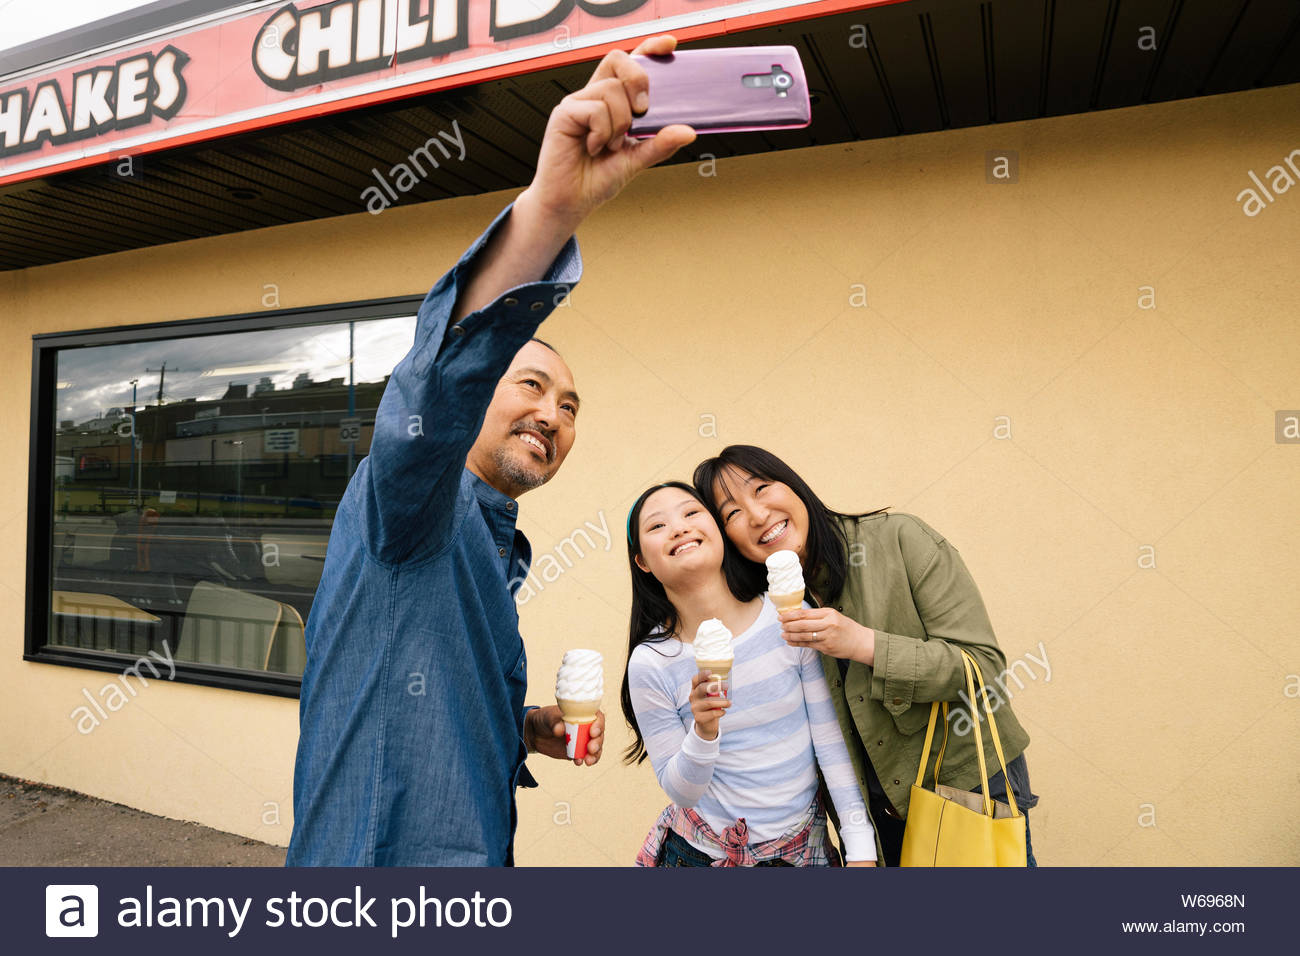 Family with camera phone taking selfie and eating ice cream outside drive-in Stock Photo